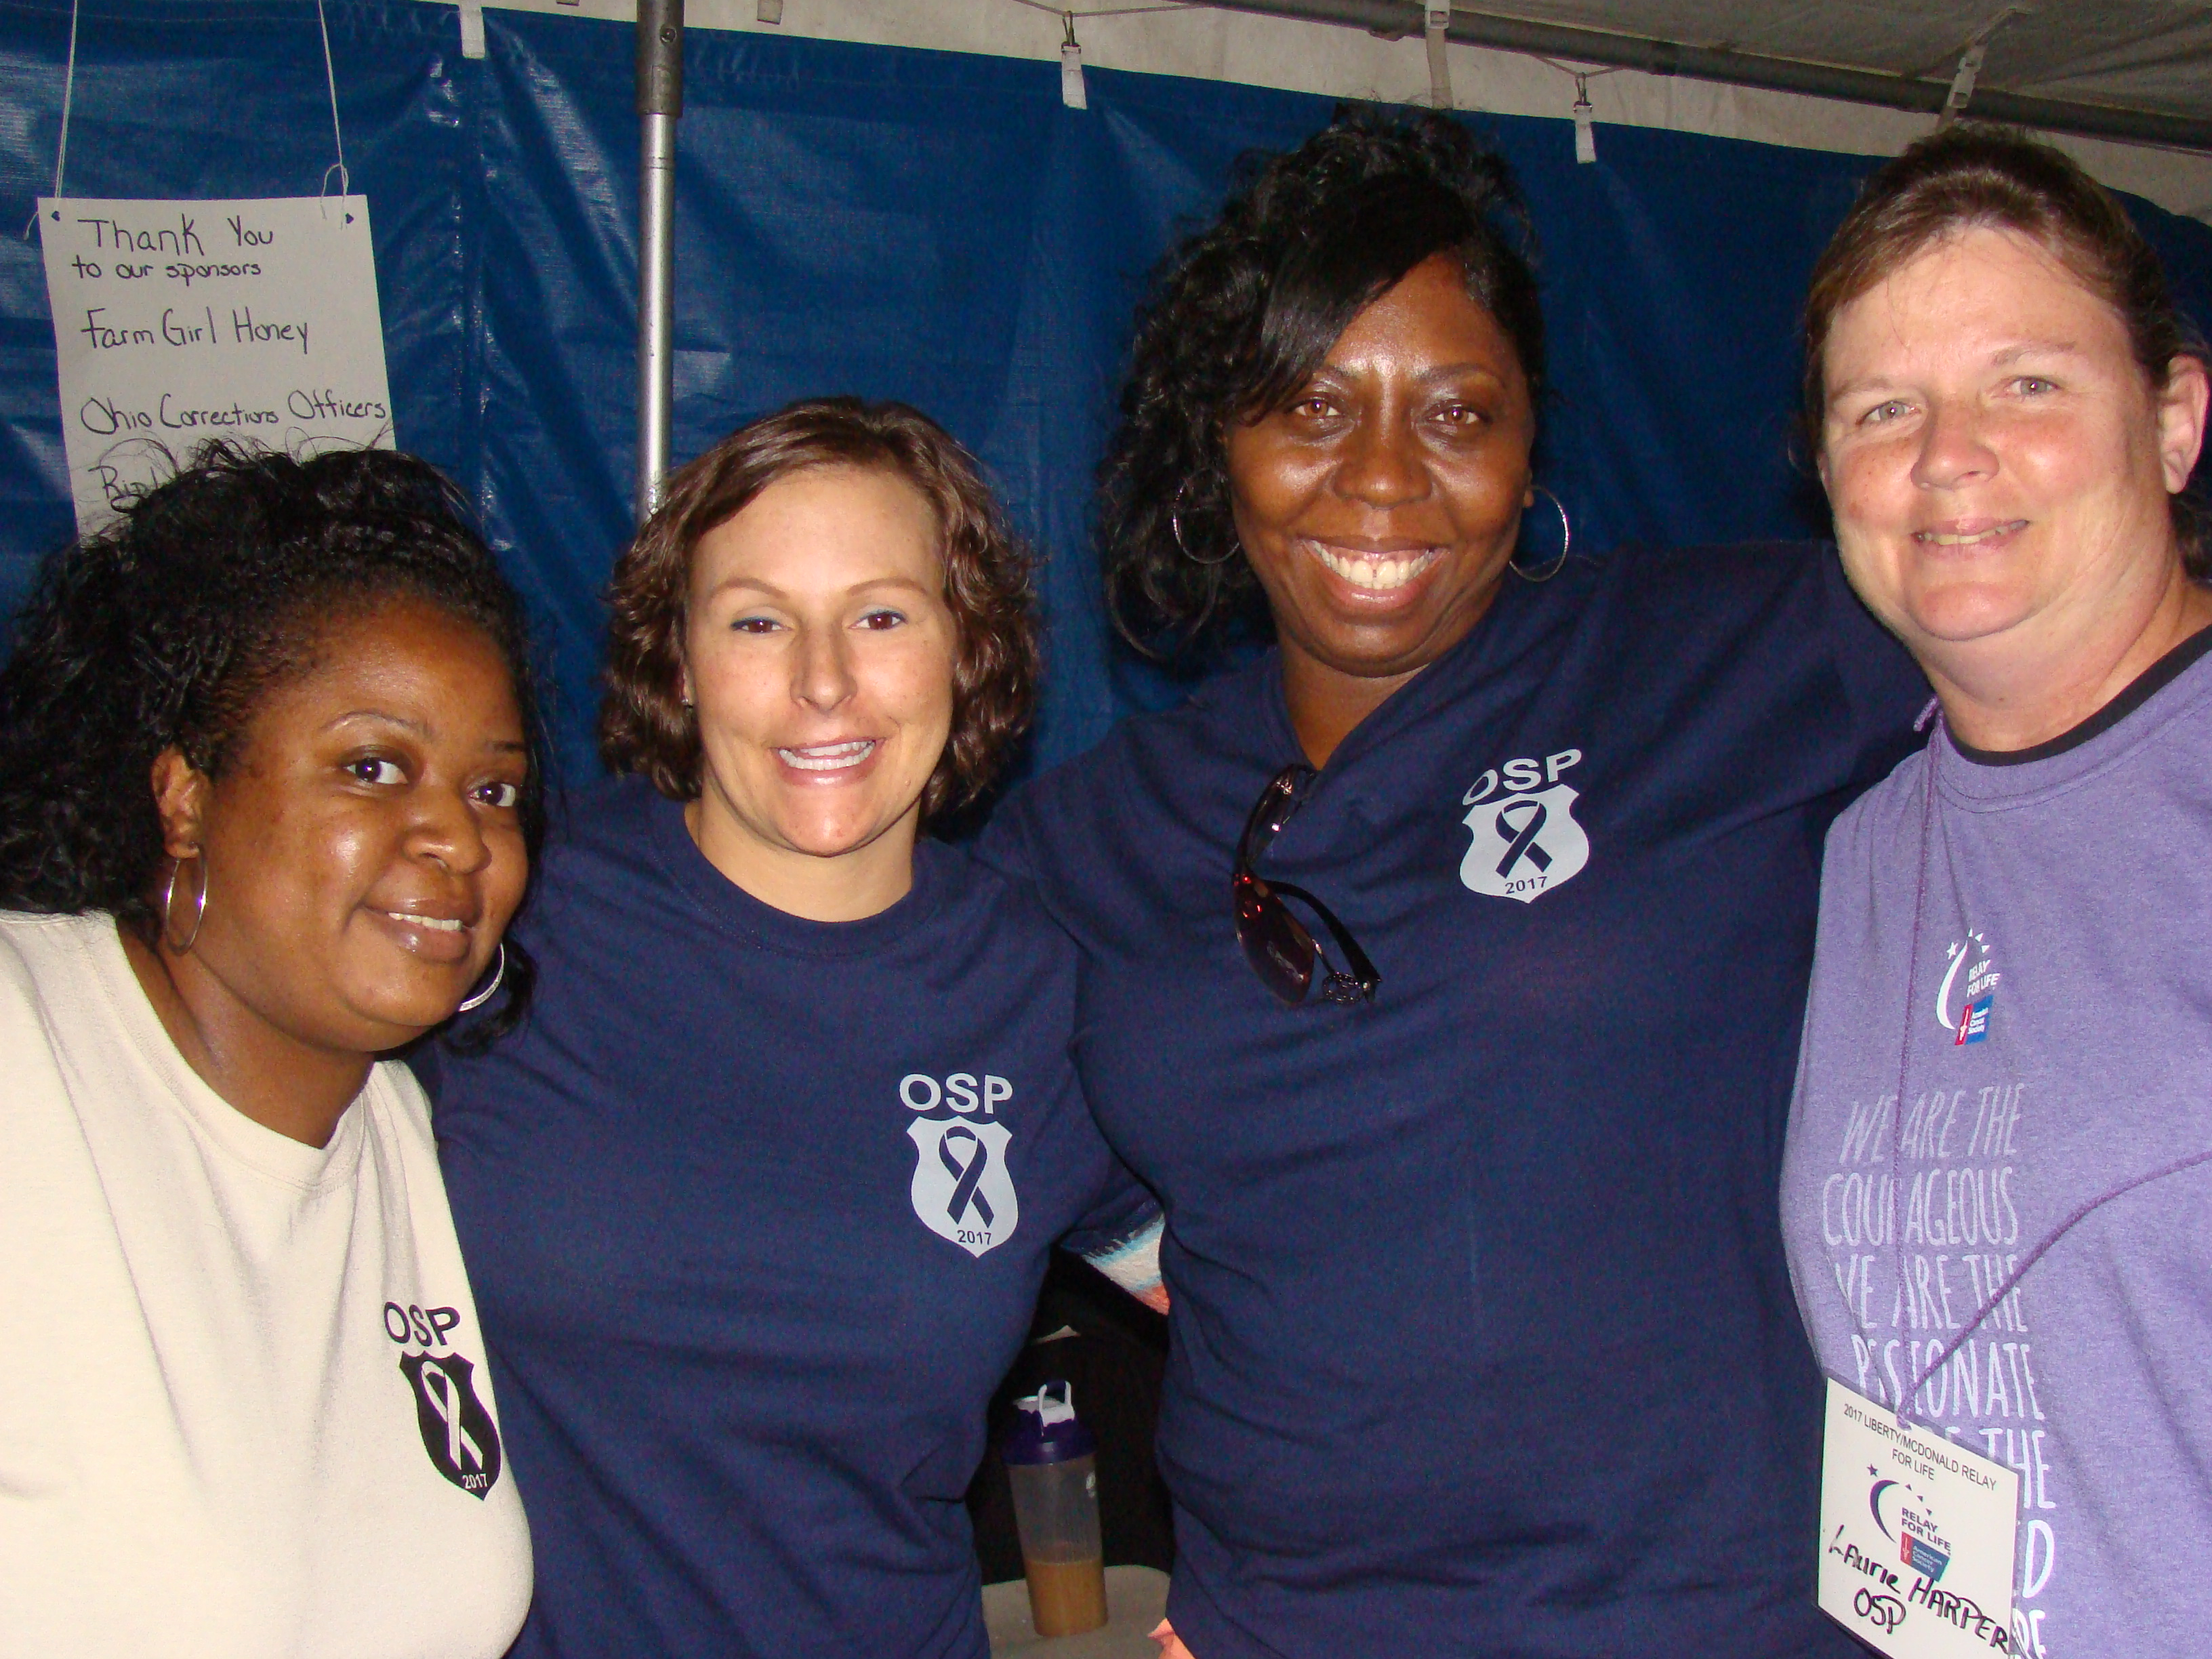 Team OSP Participates in Relay for Life Event